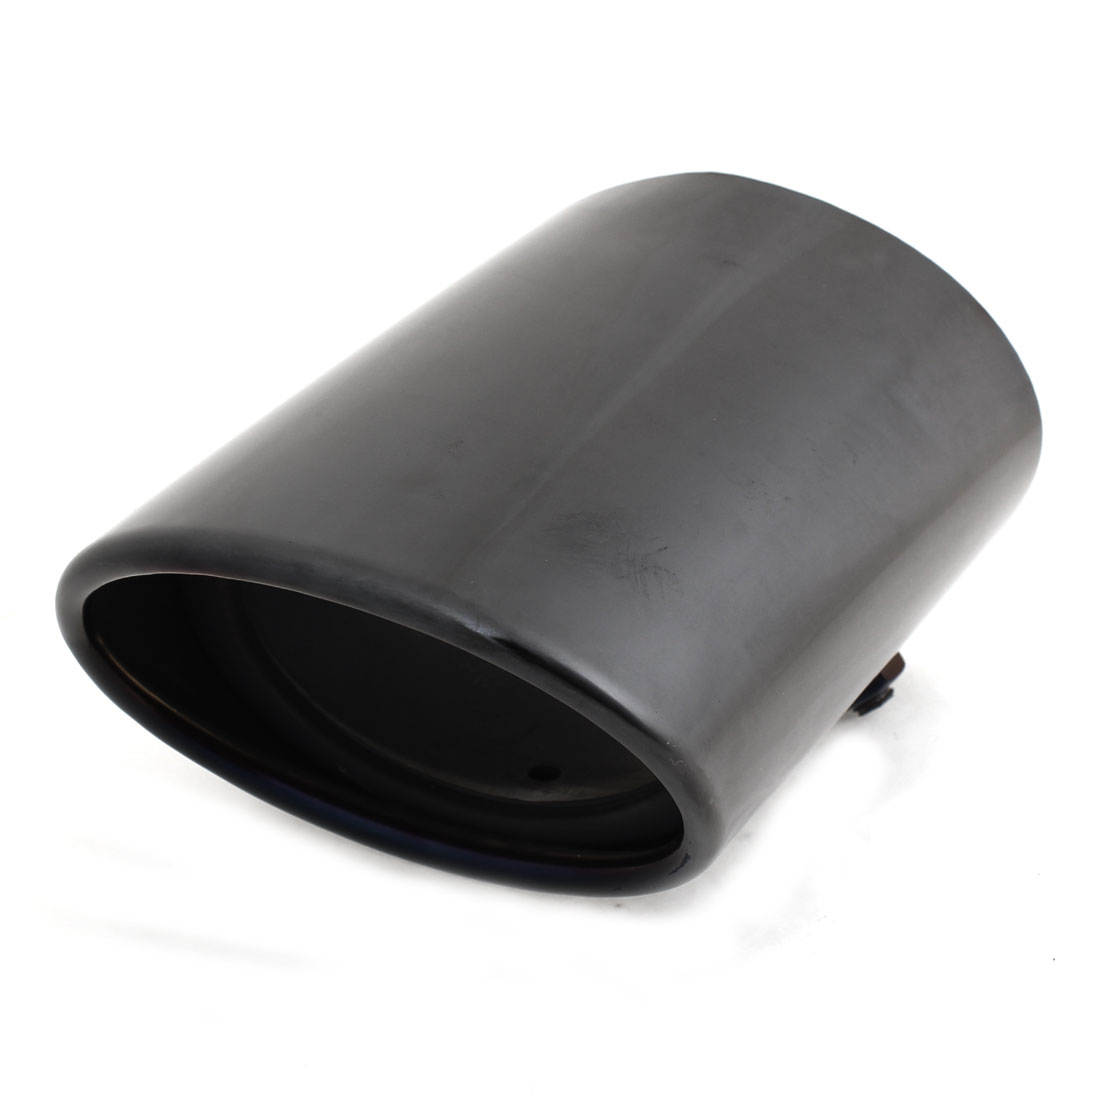 Black Stainless Steel 75 x 55mm Inlet Size Exhaust Muffler Tip for Toyota Prado